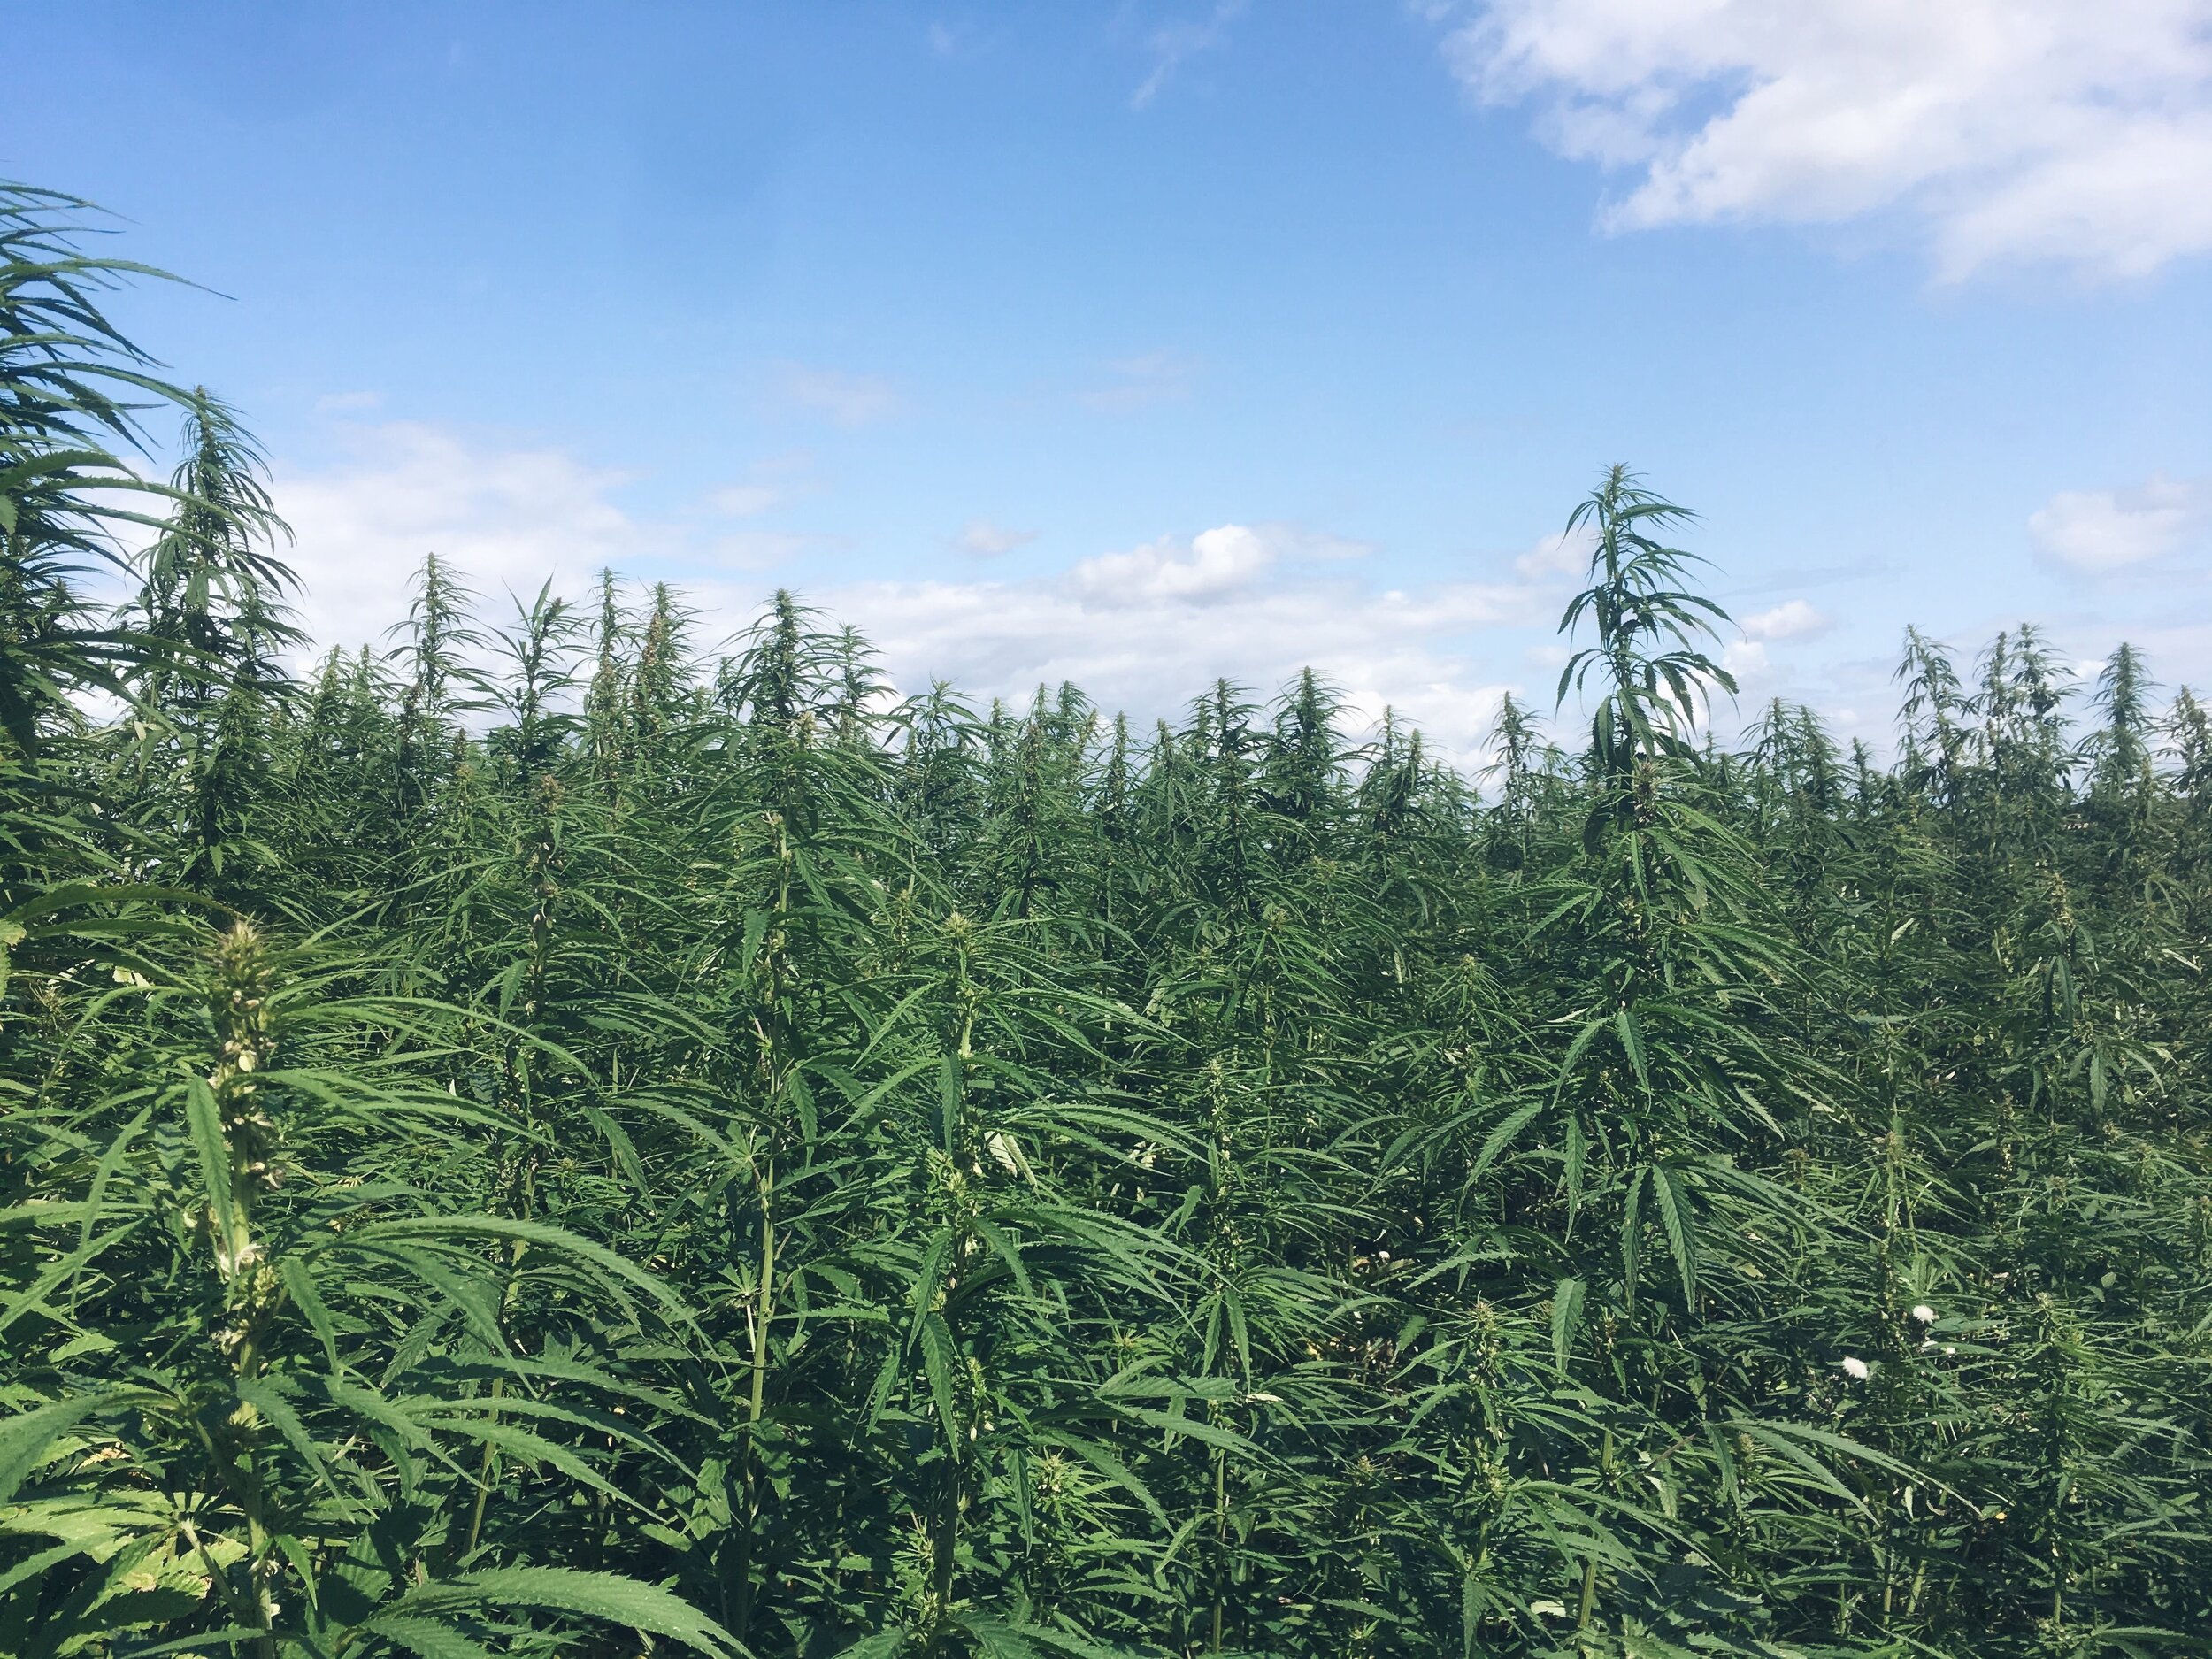 Hemp growing at Margent Farm, Cambridgeshire, UK.